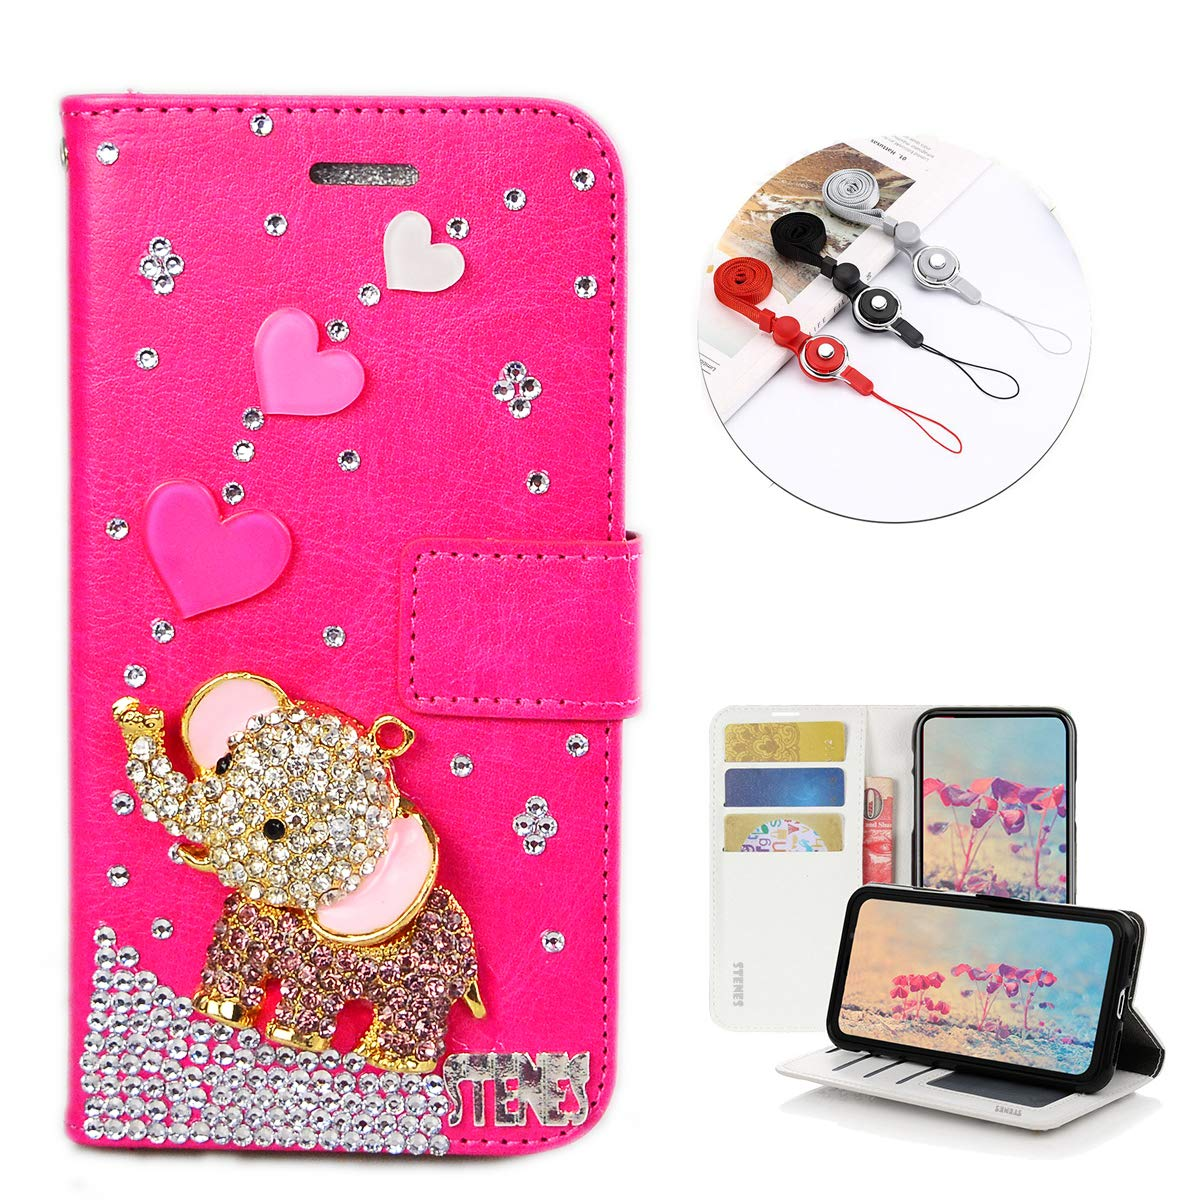 STENES Bling Wallet Phone Case Compatible with LG Tribute HD/LG X Style - Stylish - 3D Handmade Heart Cute Elephant Design Leather Cover with Neck Strap Lanyard [3 Pack] - Hot Pink